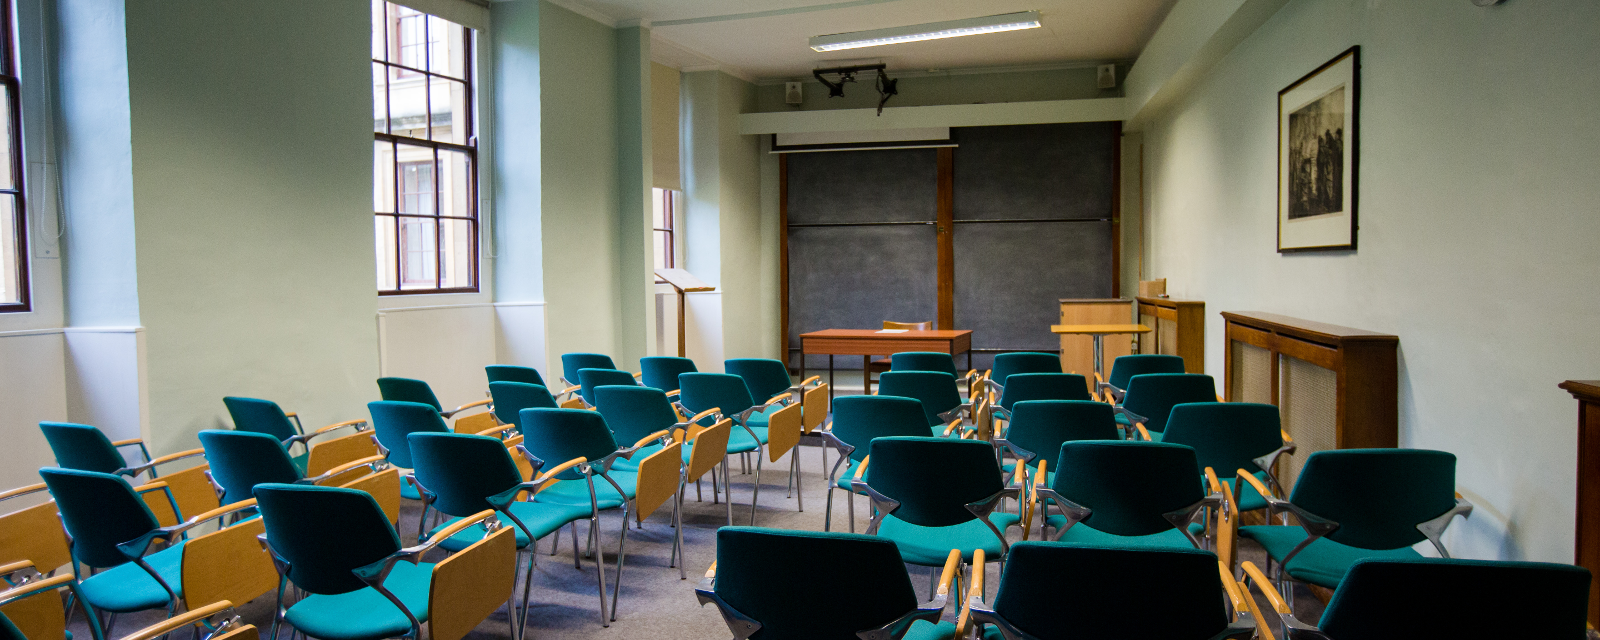 Lecture Room B The Queen S College Oxford